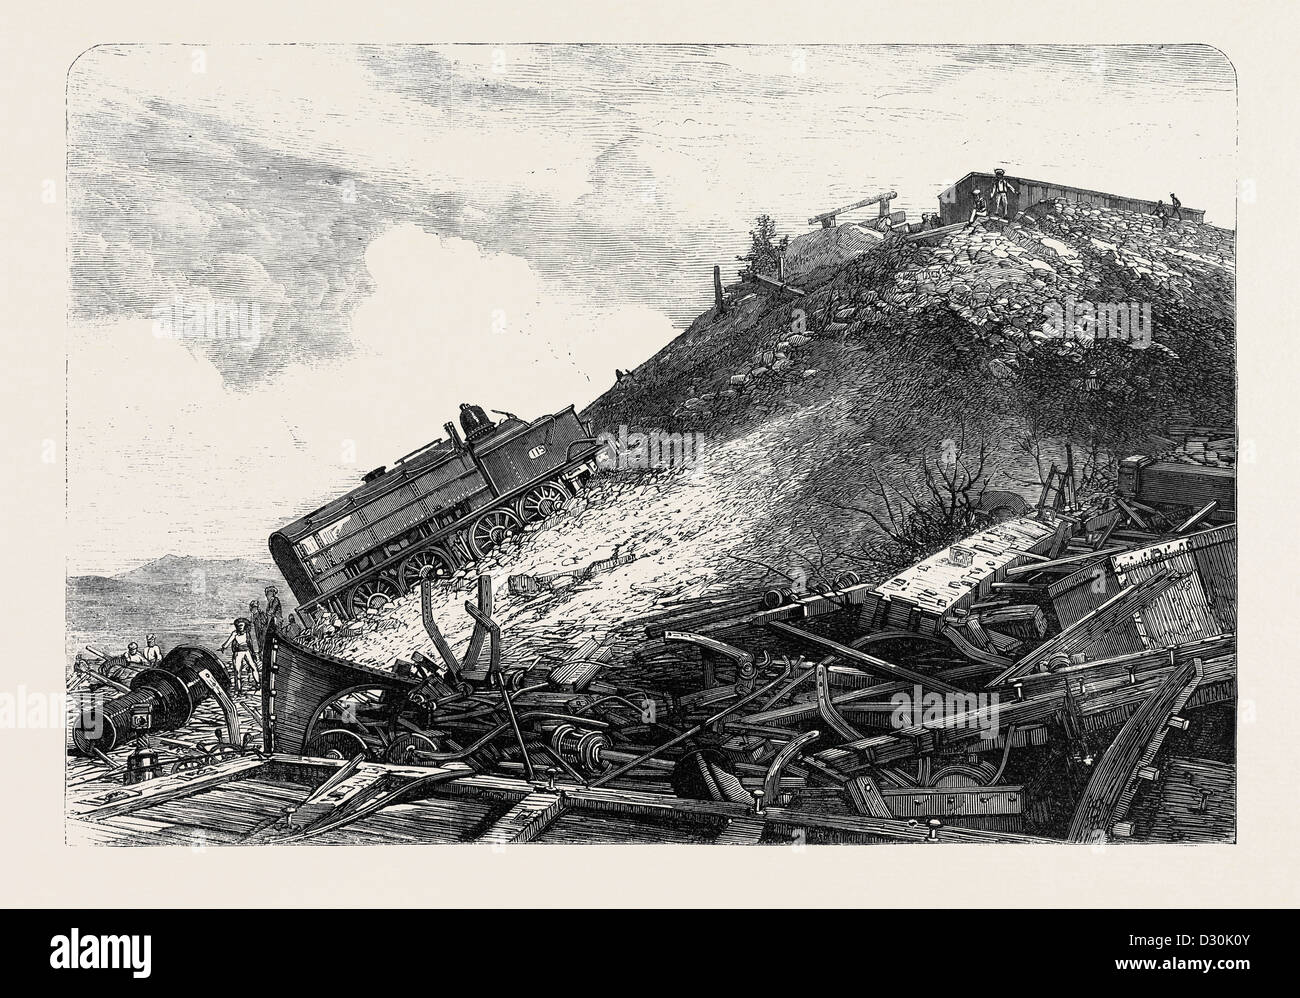 THE DISASTER ON THE GREAT INDIAN PENINSULA RAILWAY: SCENE OF THE ACCIDENT 1869 - Stock Image